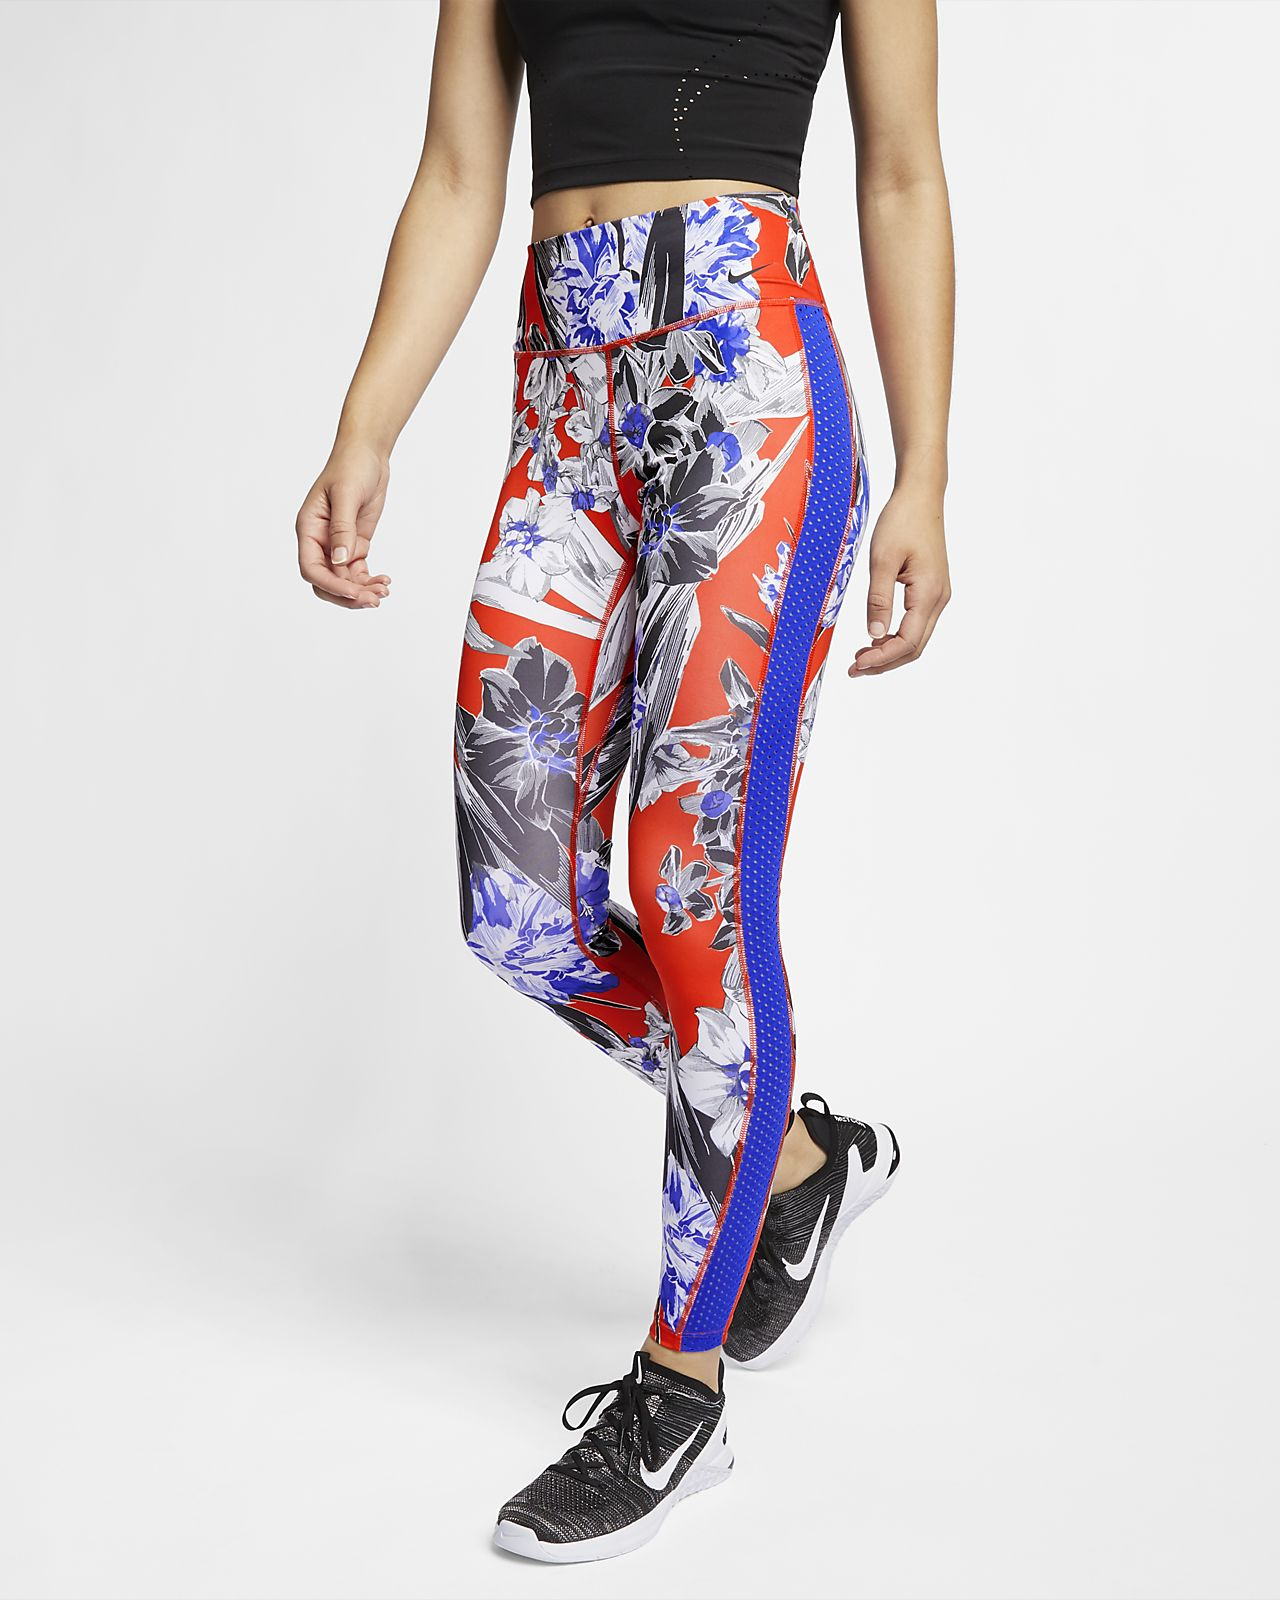 Nike One Women's Floral Tights